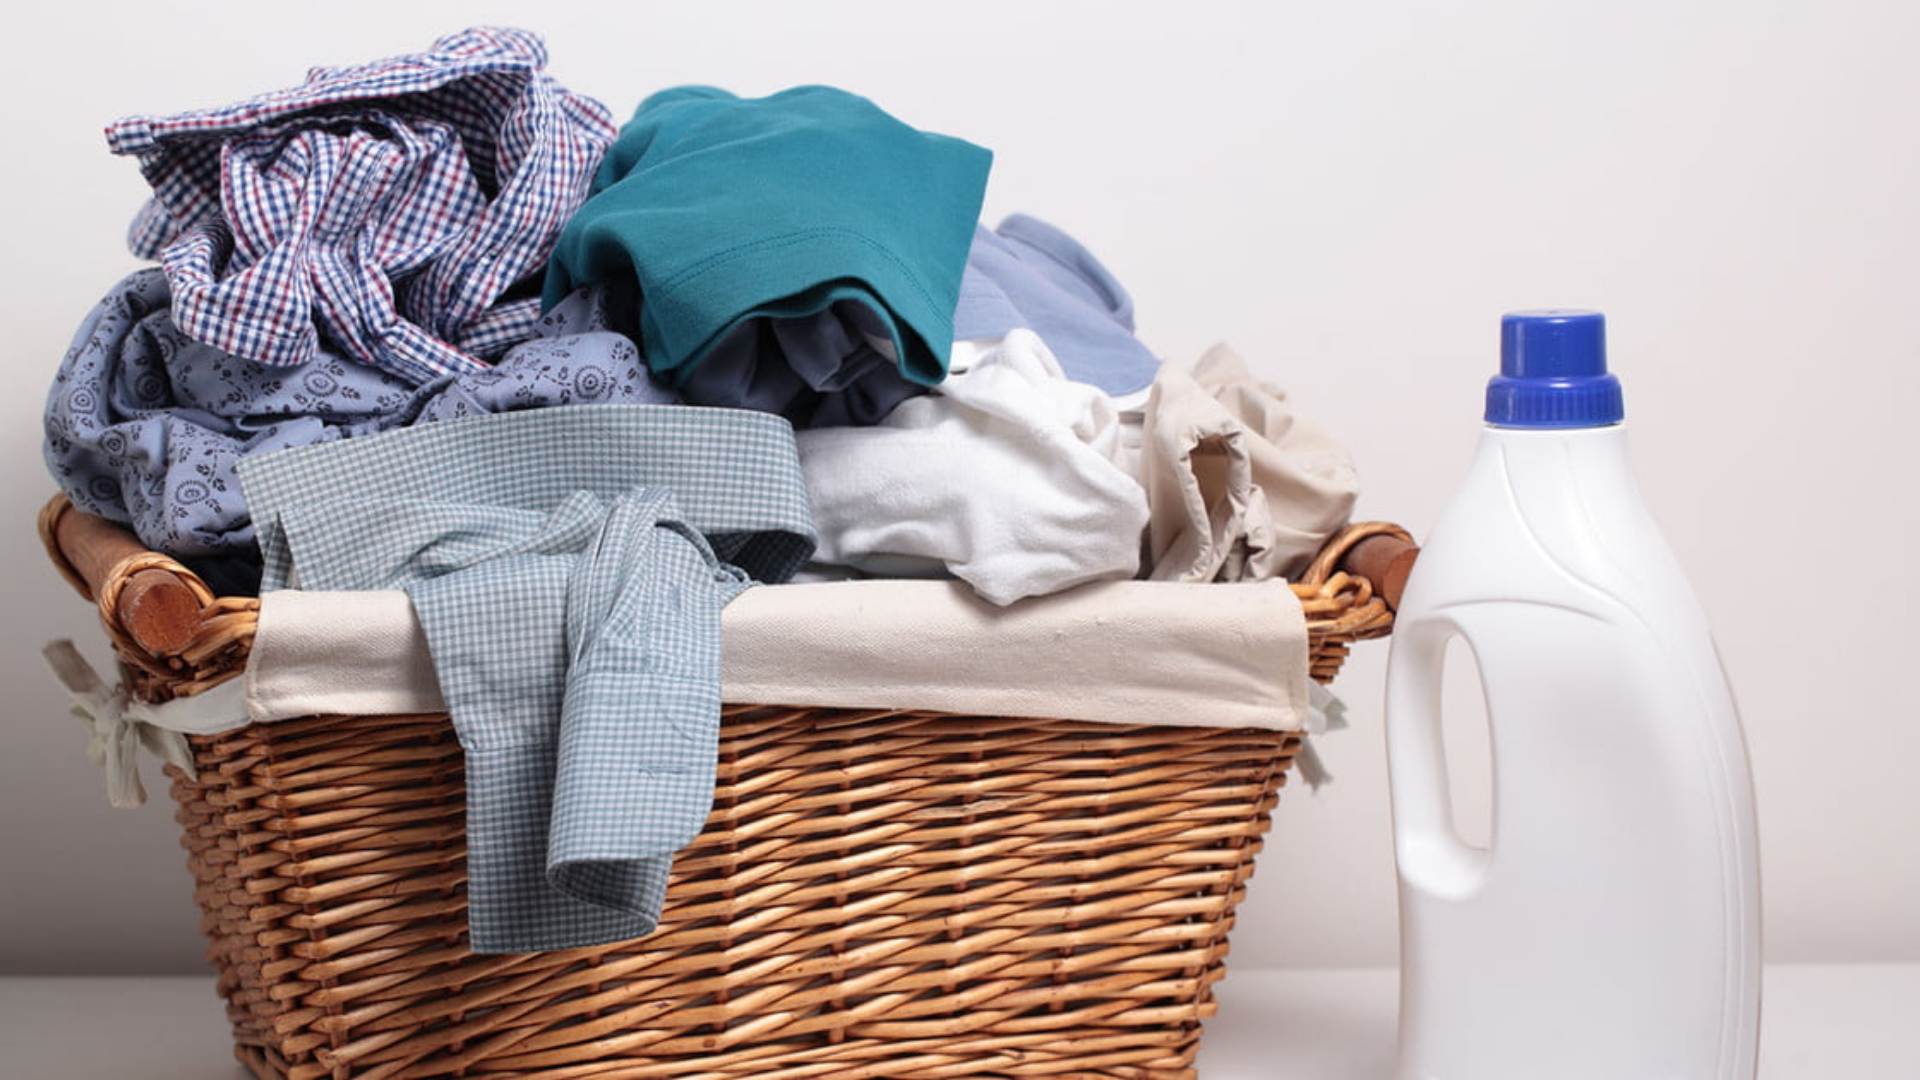 How to remove mildew smell from clothes